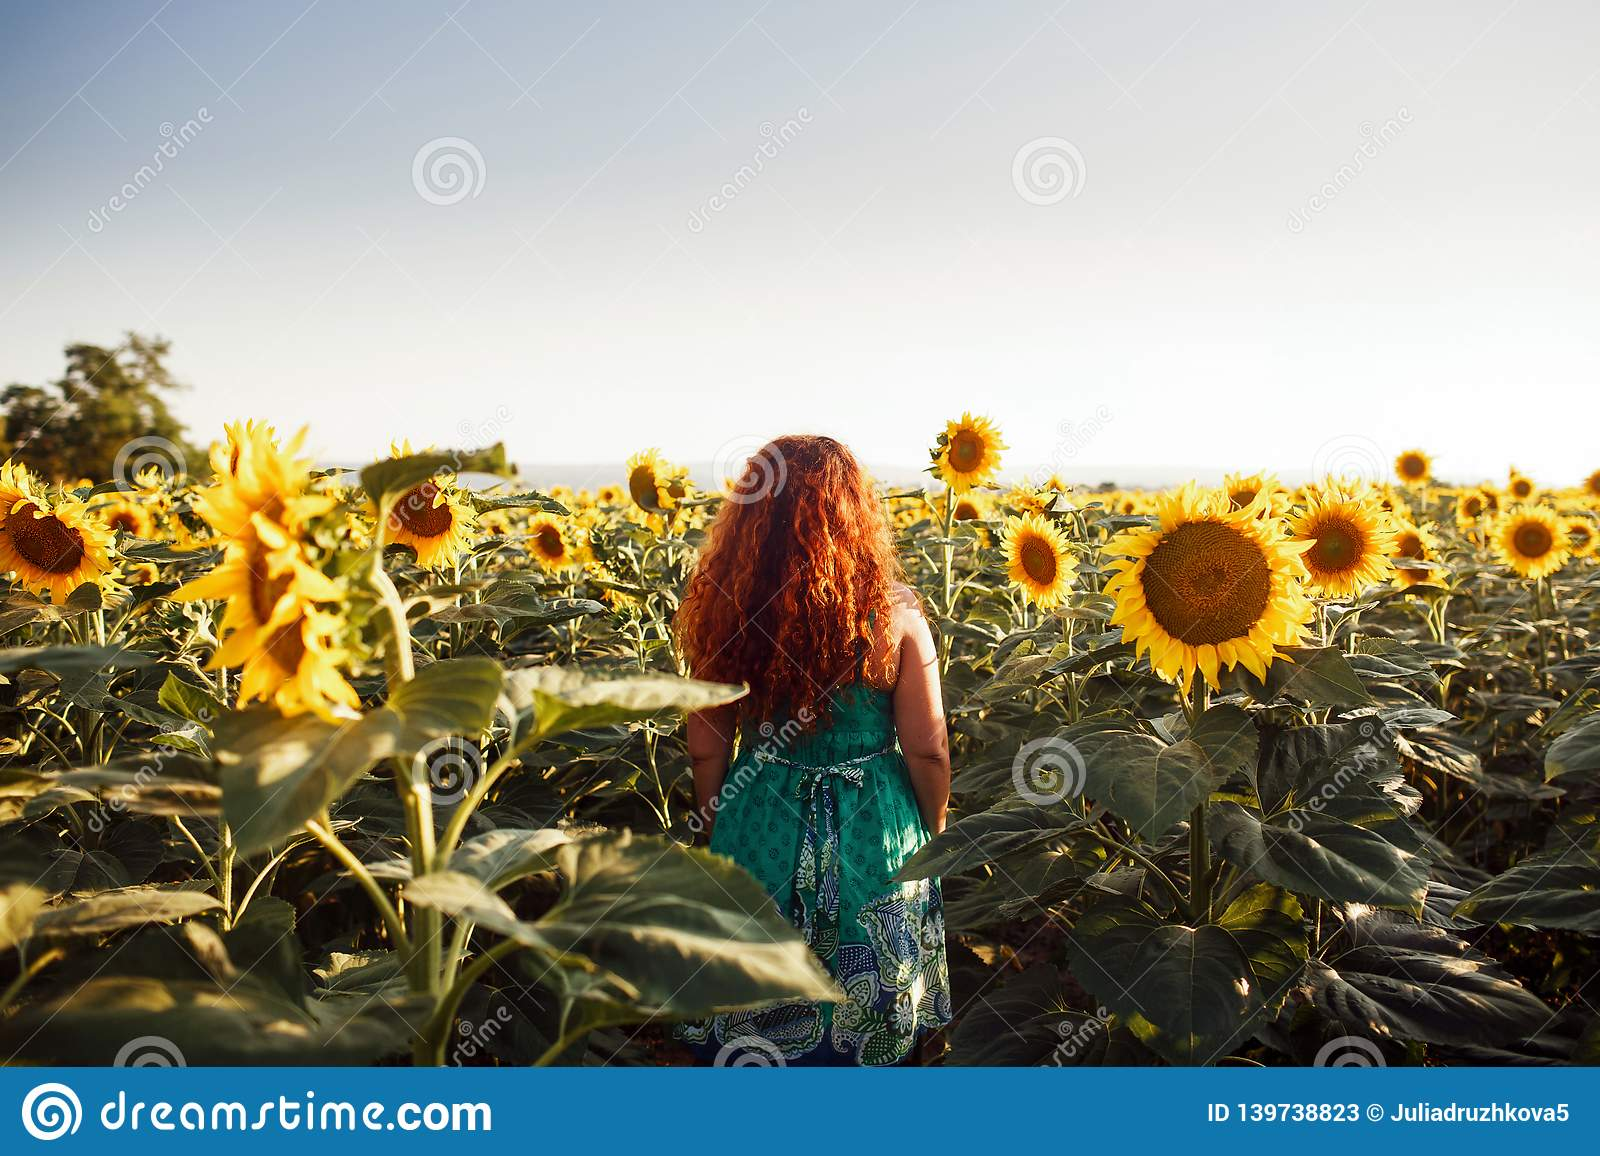 Red-haired young woman walking away in a field of sunflowers, view from her back. Copy space